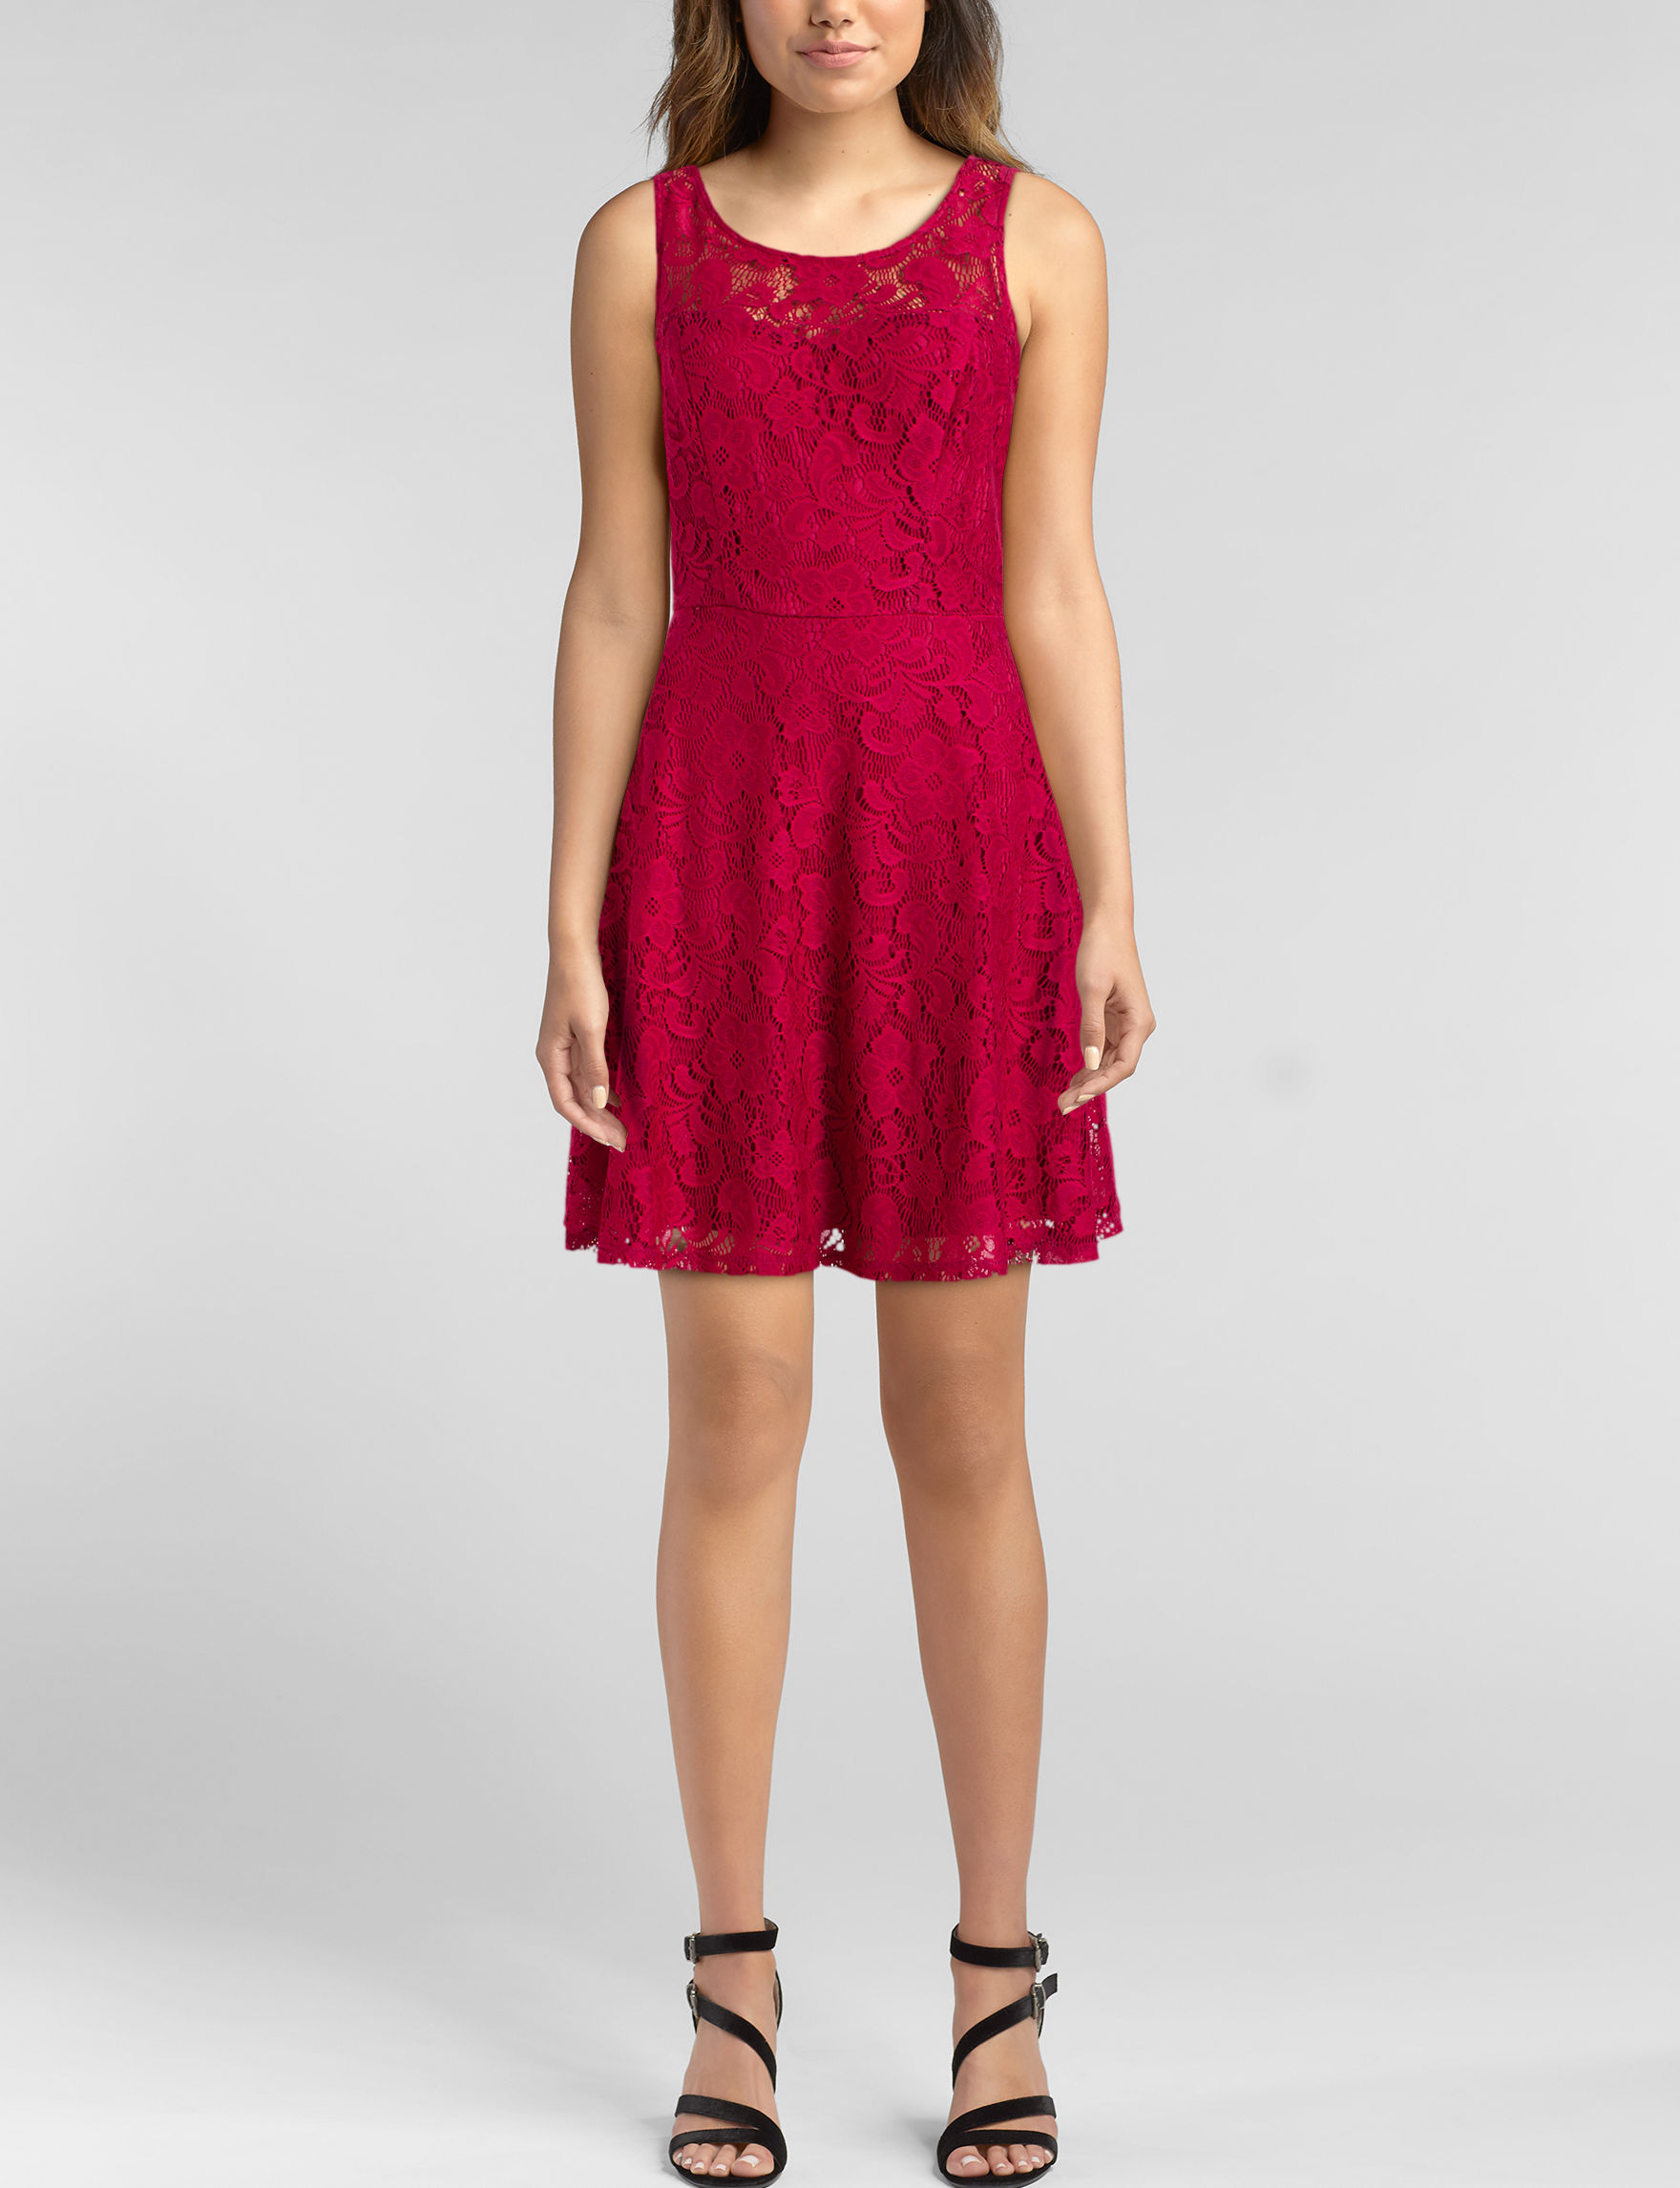 BeBop Berry Cocktail & Party Fit & Flare Dresses